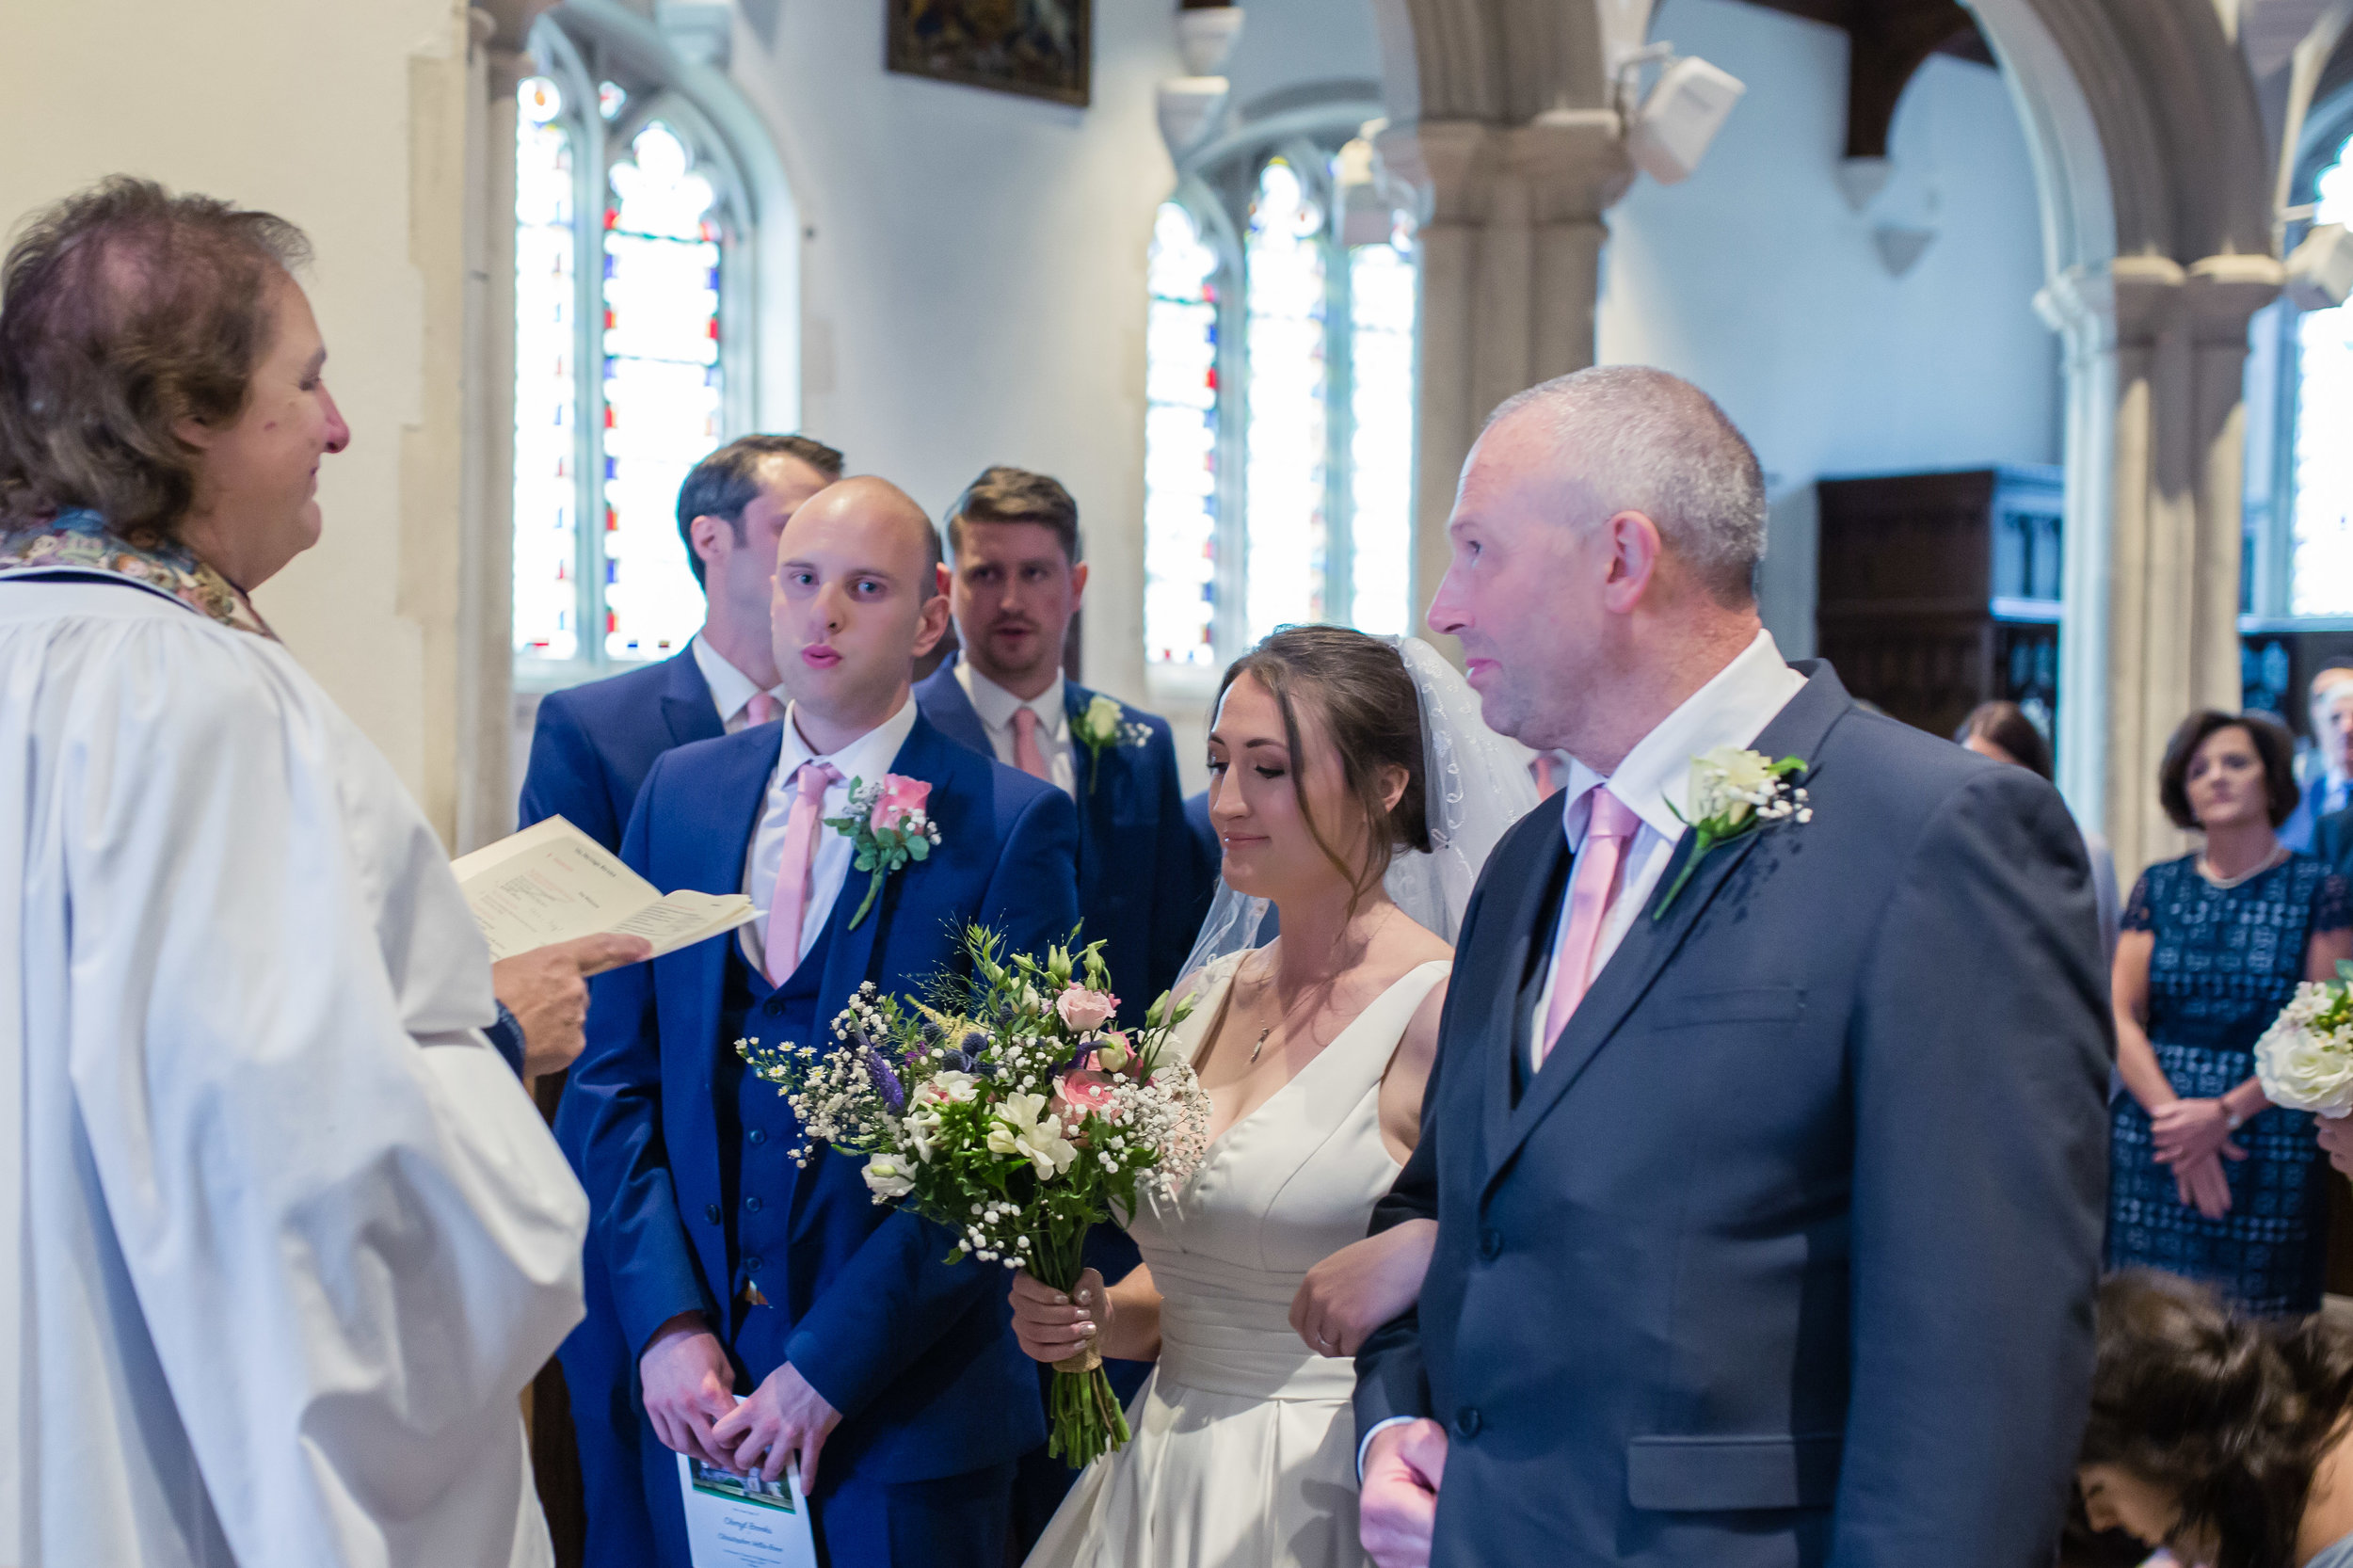 Delighted to capture this expression on the groom's face!